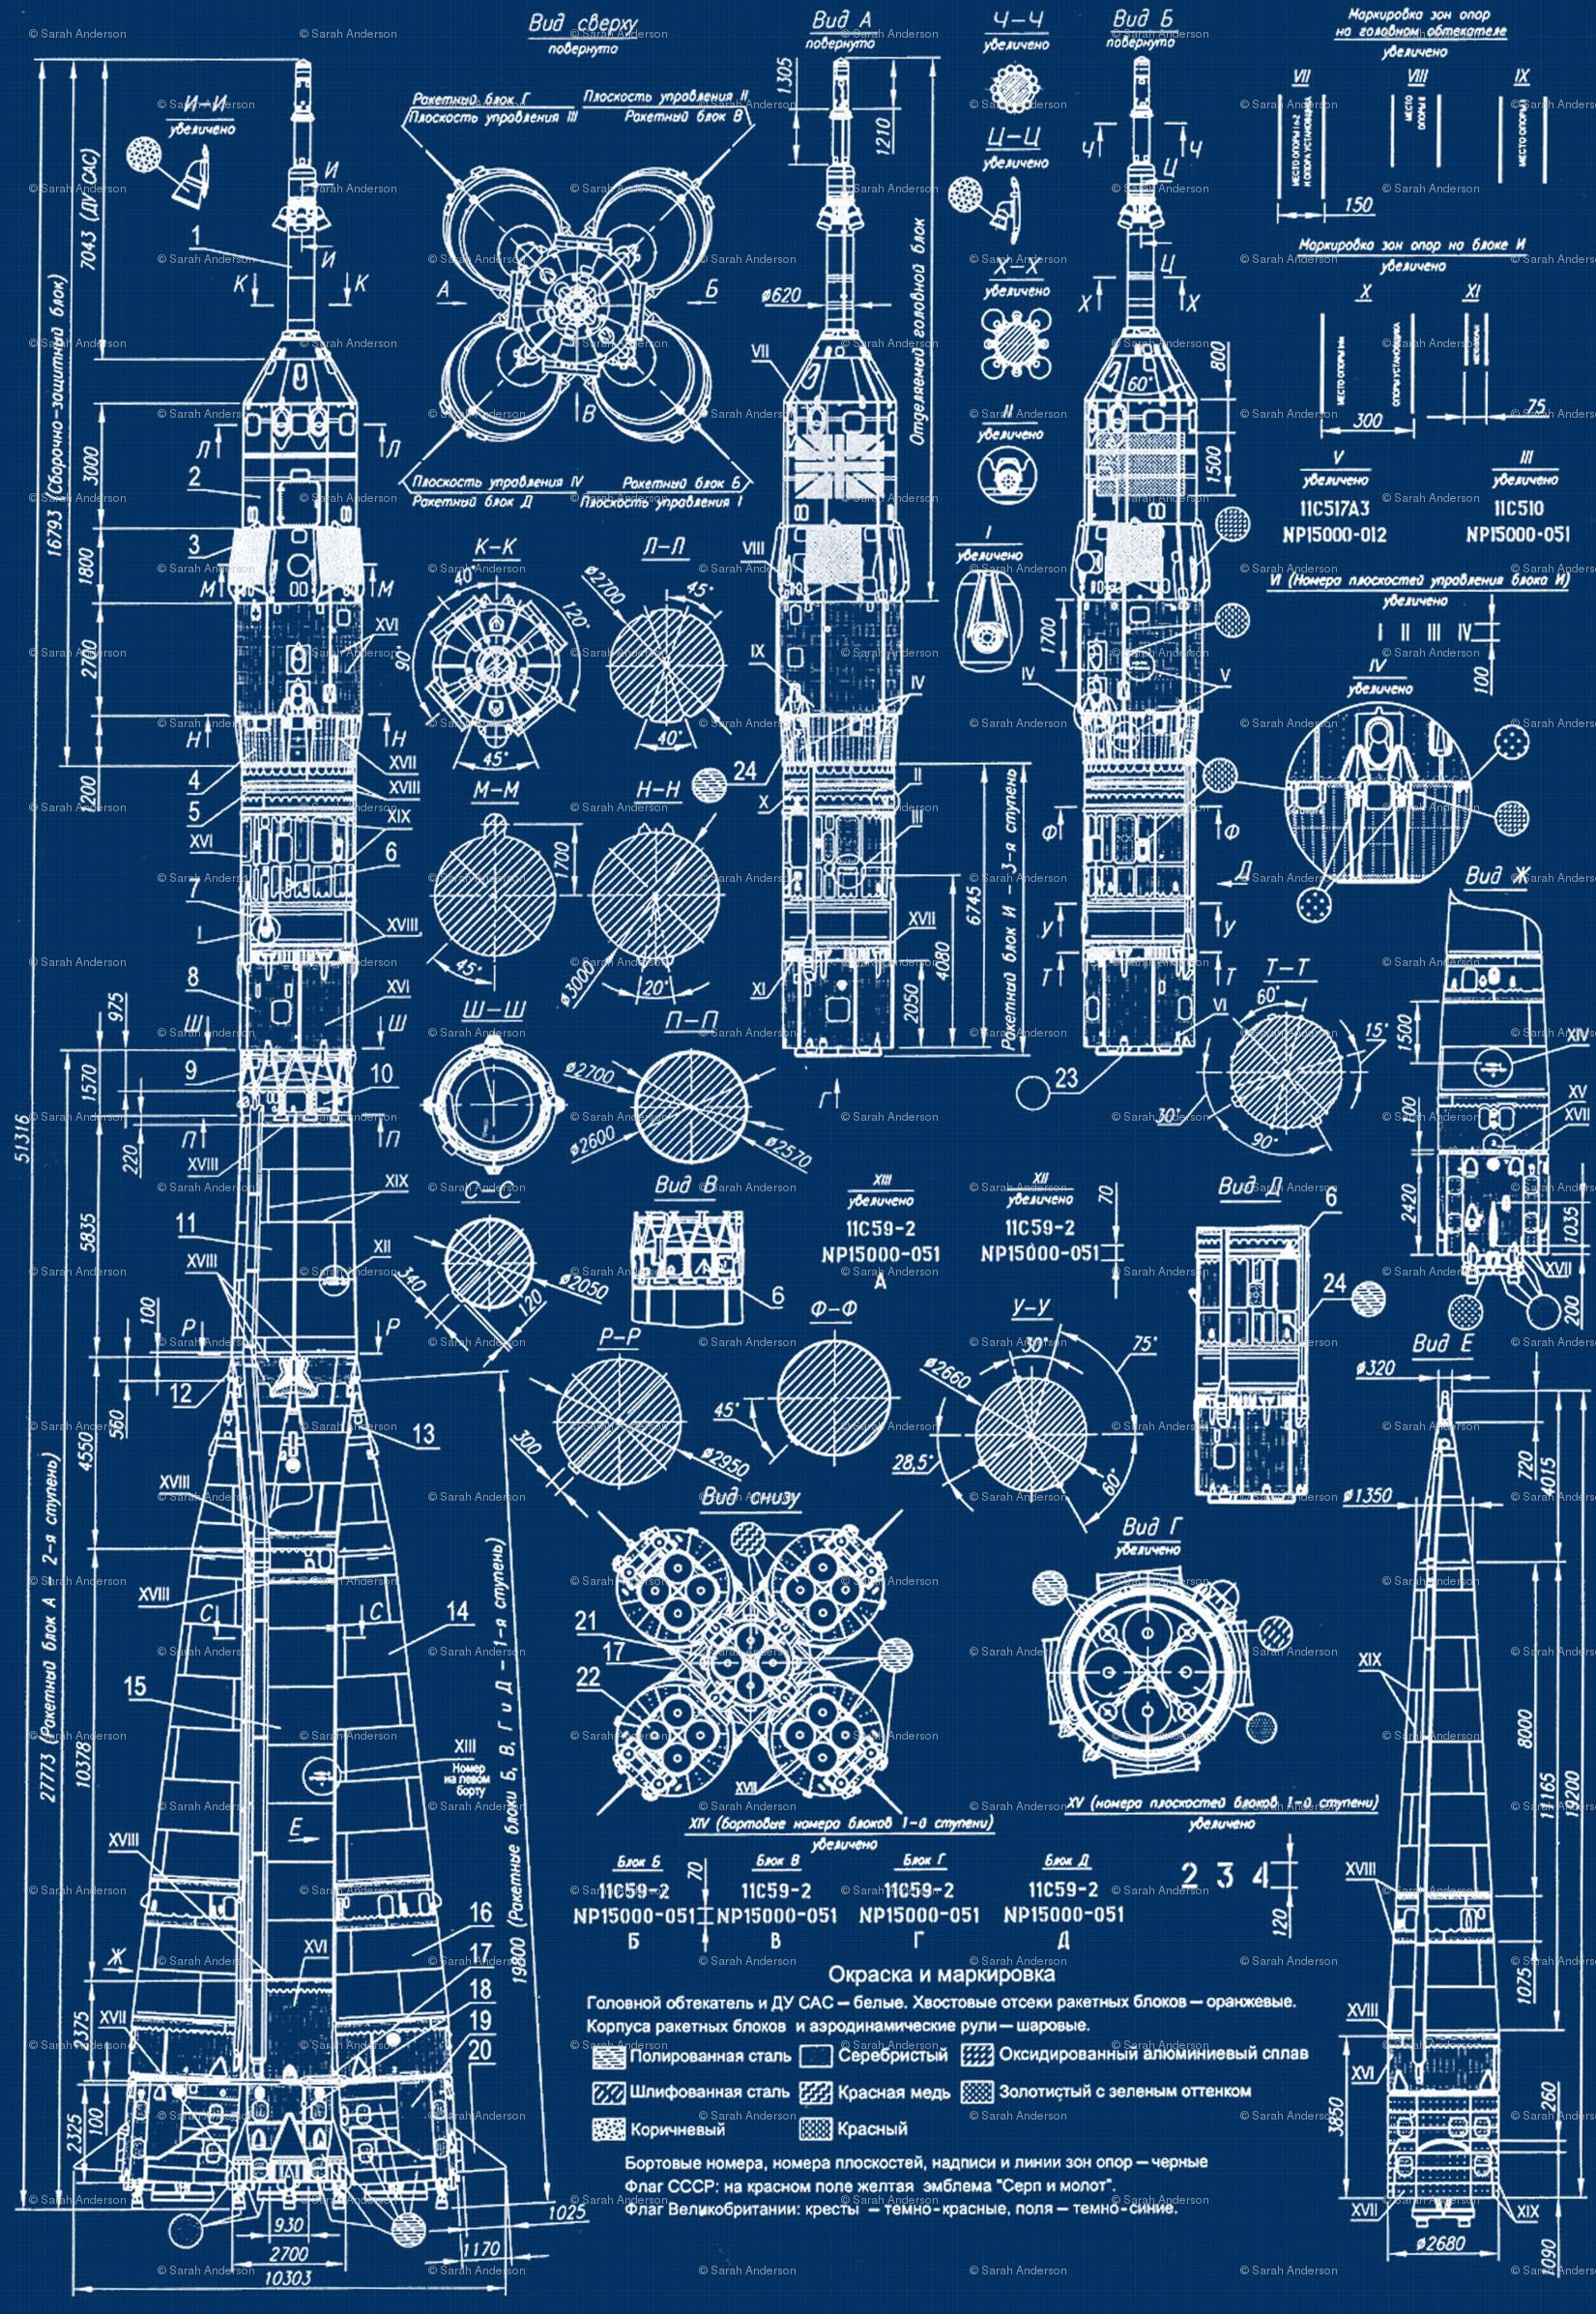 Soyuz Blueprint wallpaper - sharksvspenguins - Spoonflower on